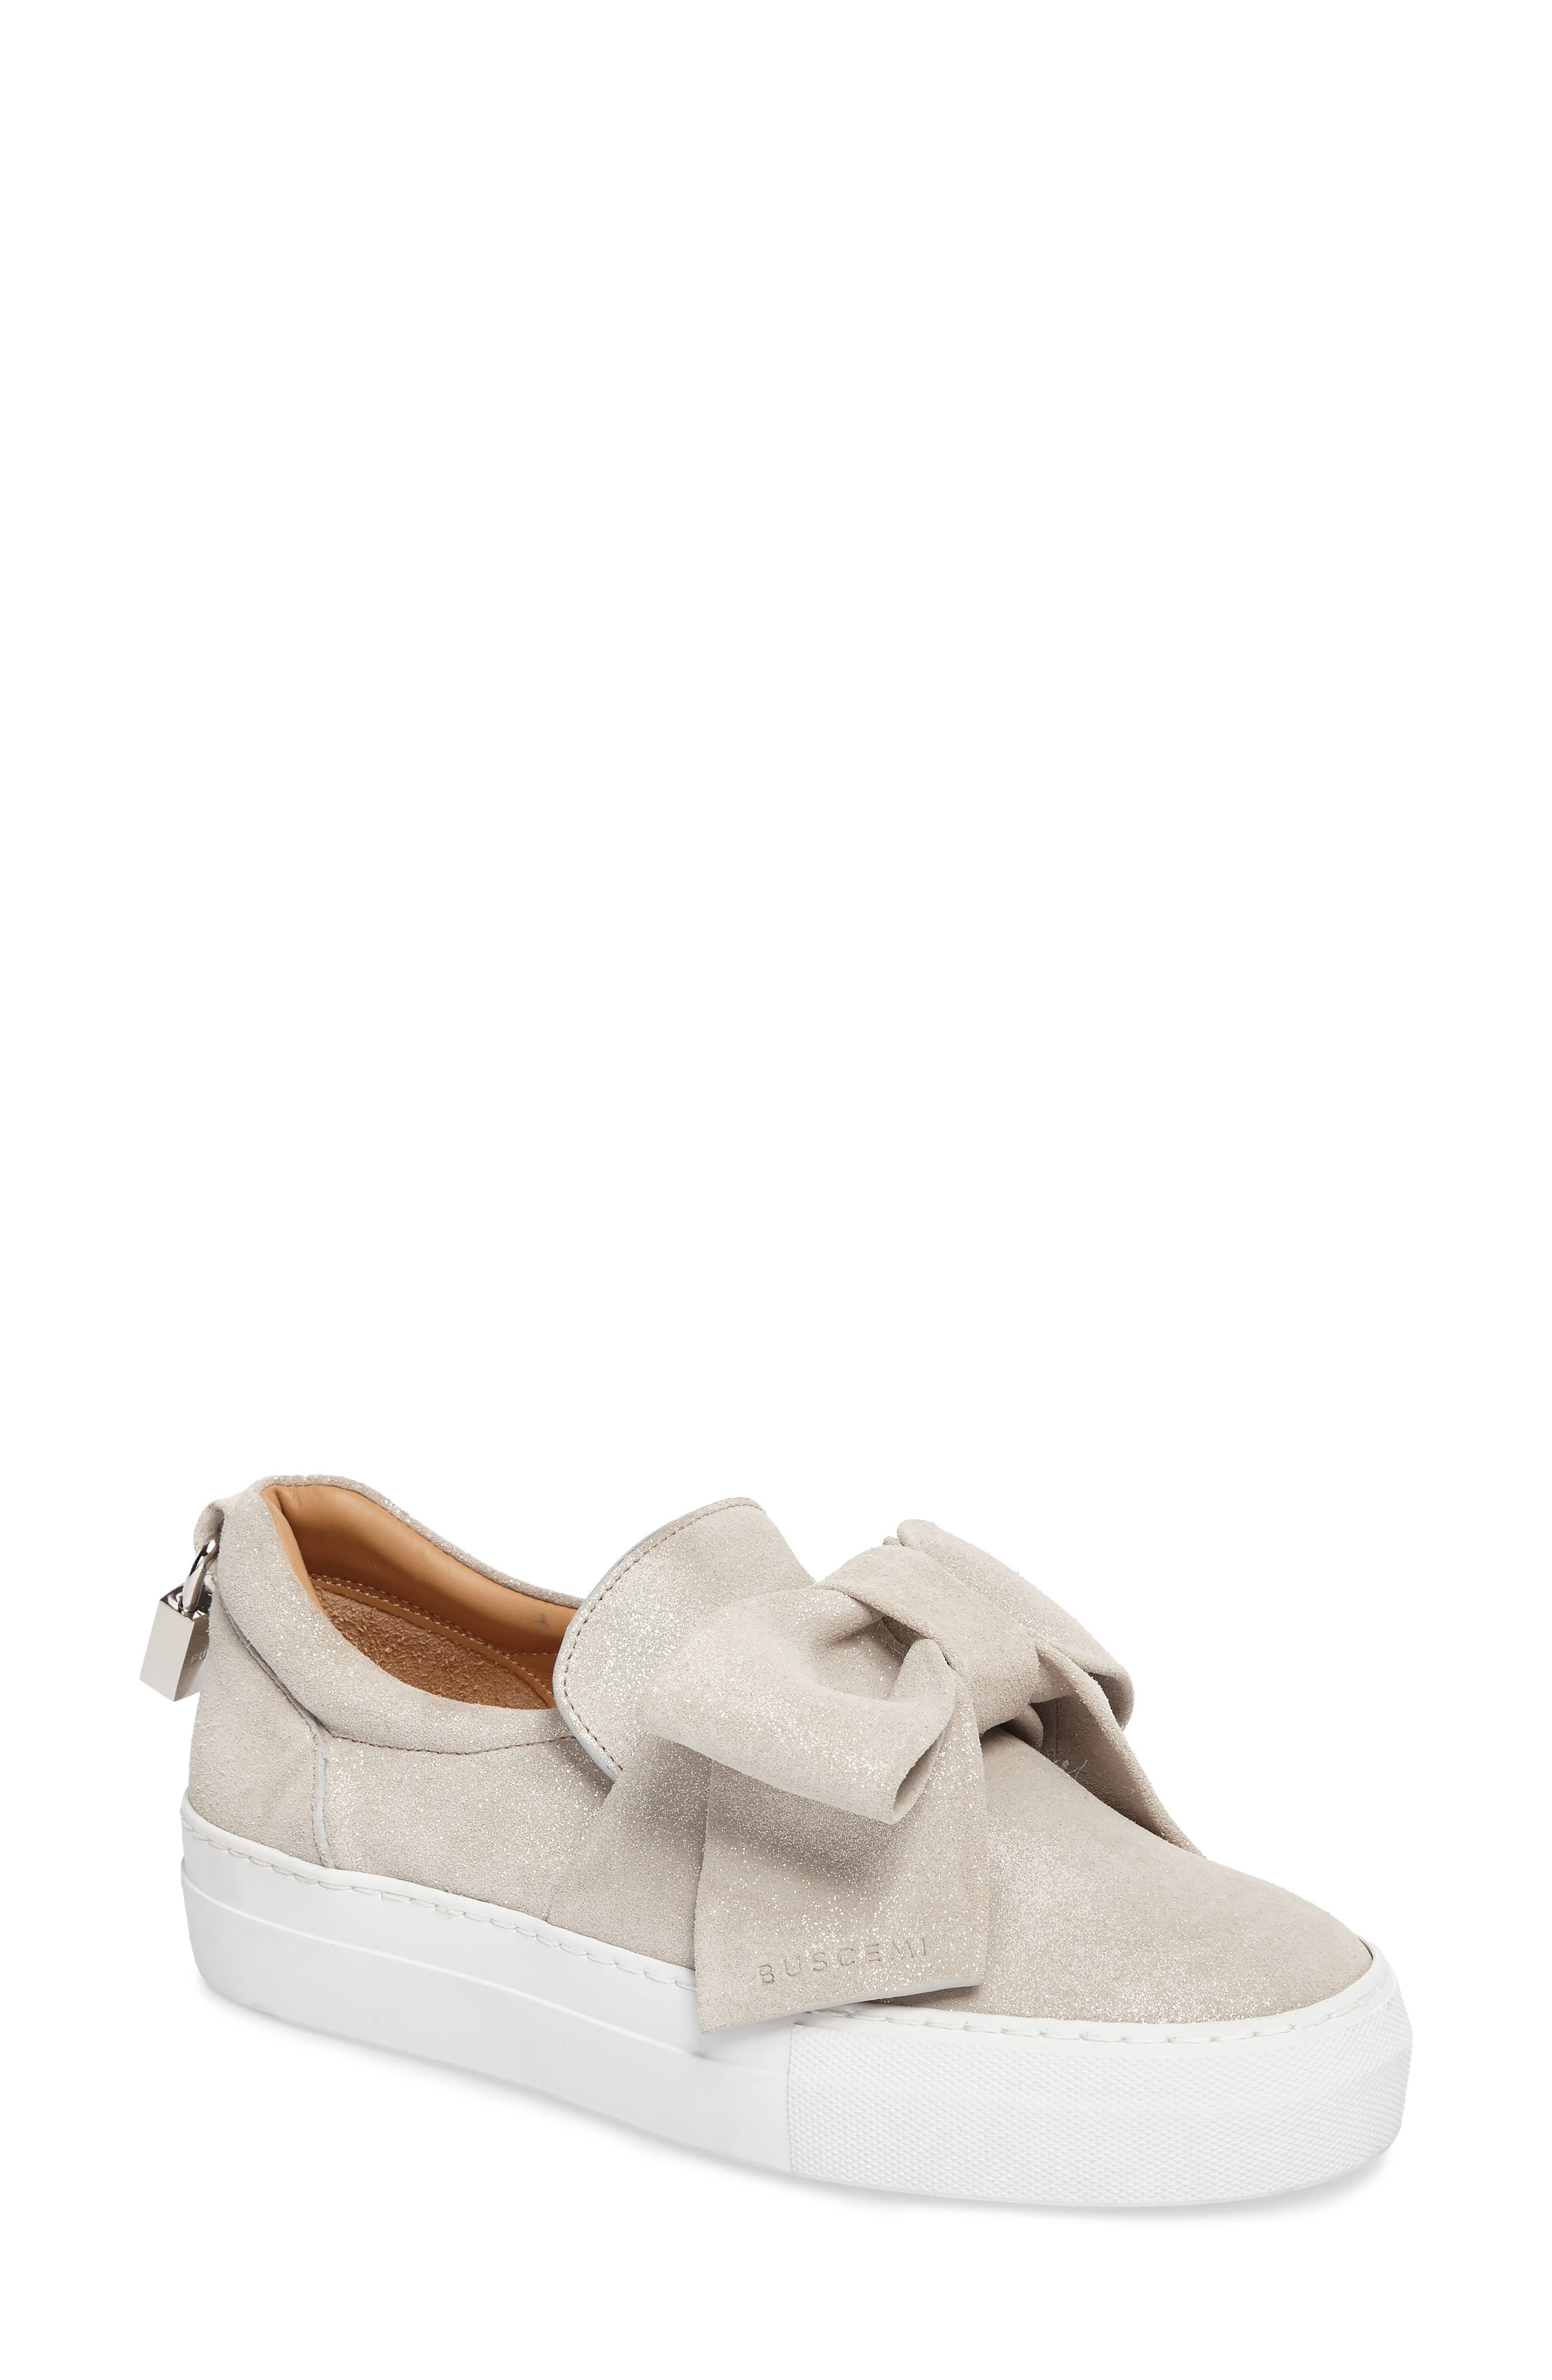 Bow Slip-On Sneaker,                         Main,                         color, 020